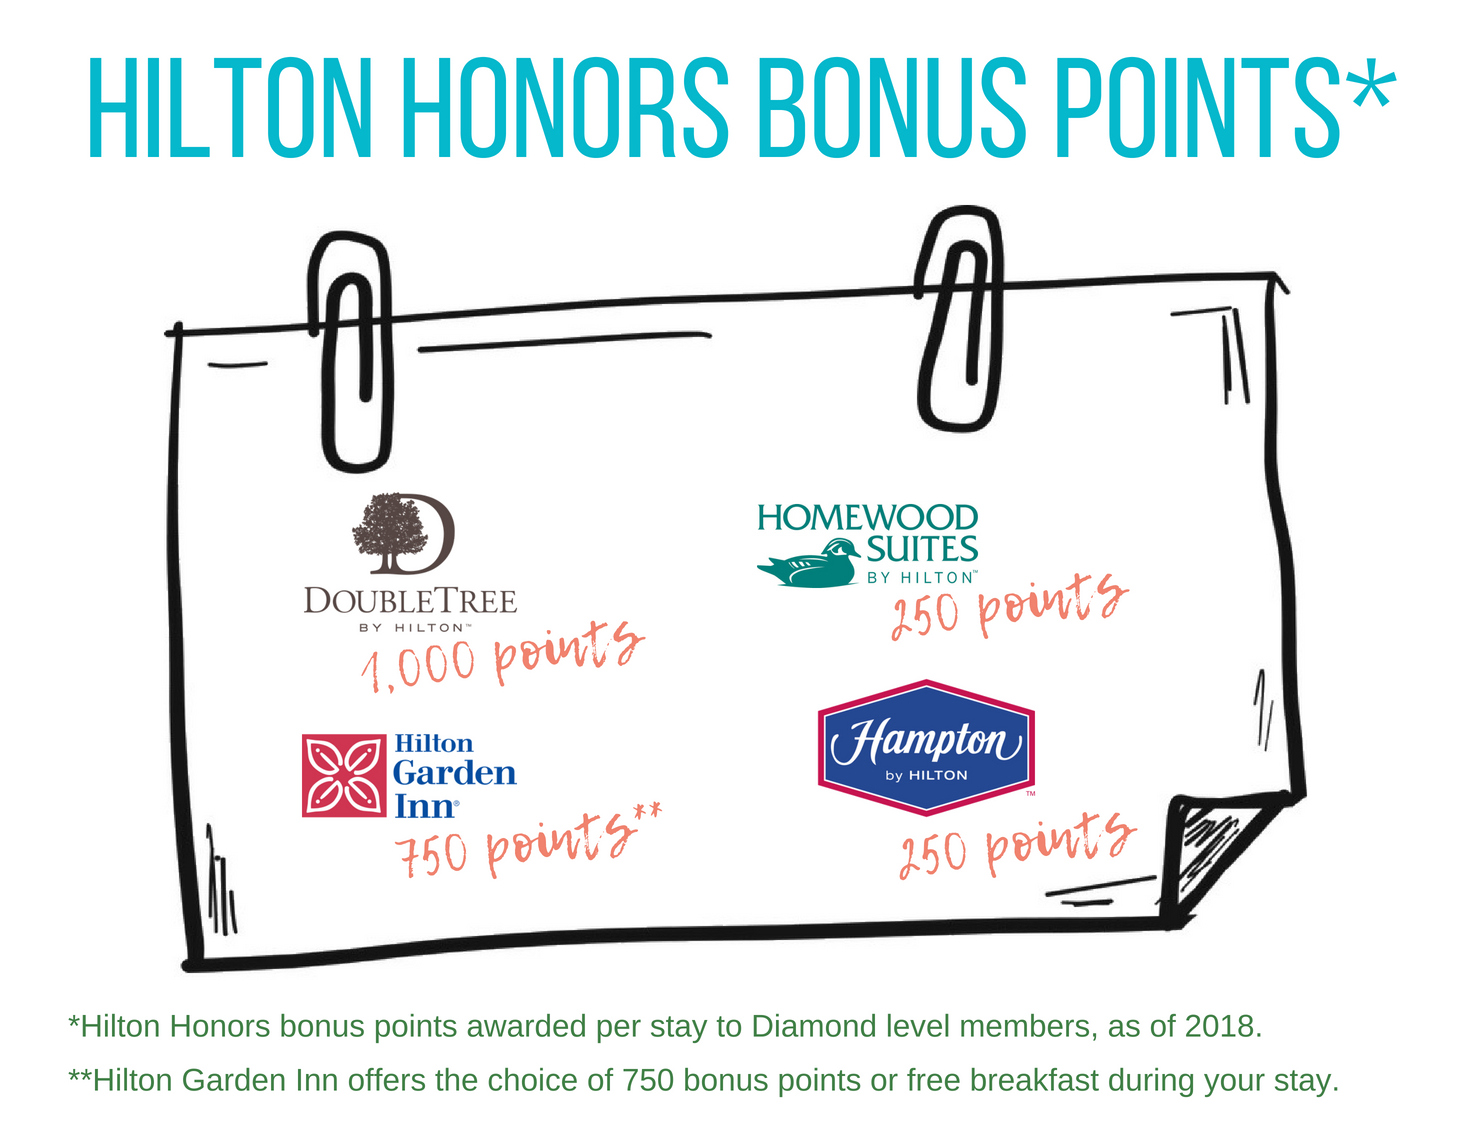 Hilton Honors bonus points awarded per stay to Diamond level members as of 2018. Mattress Run Free Hotel Nights.